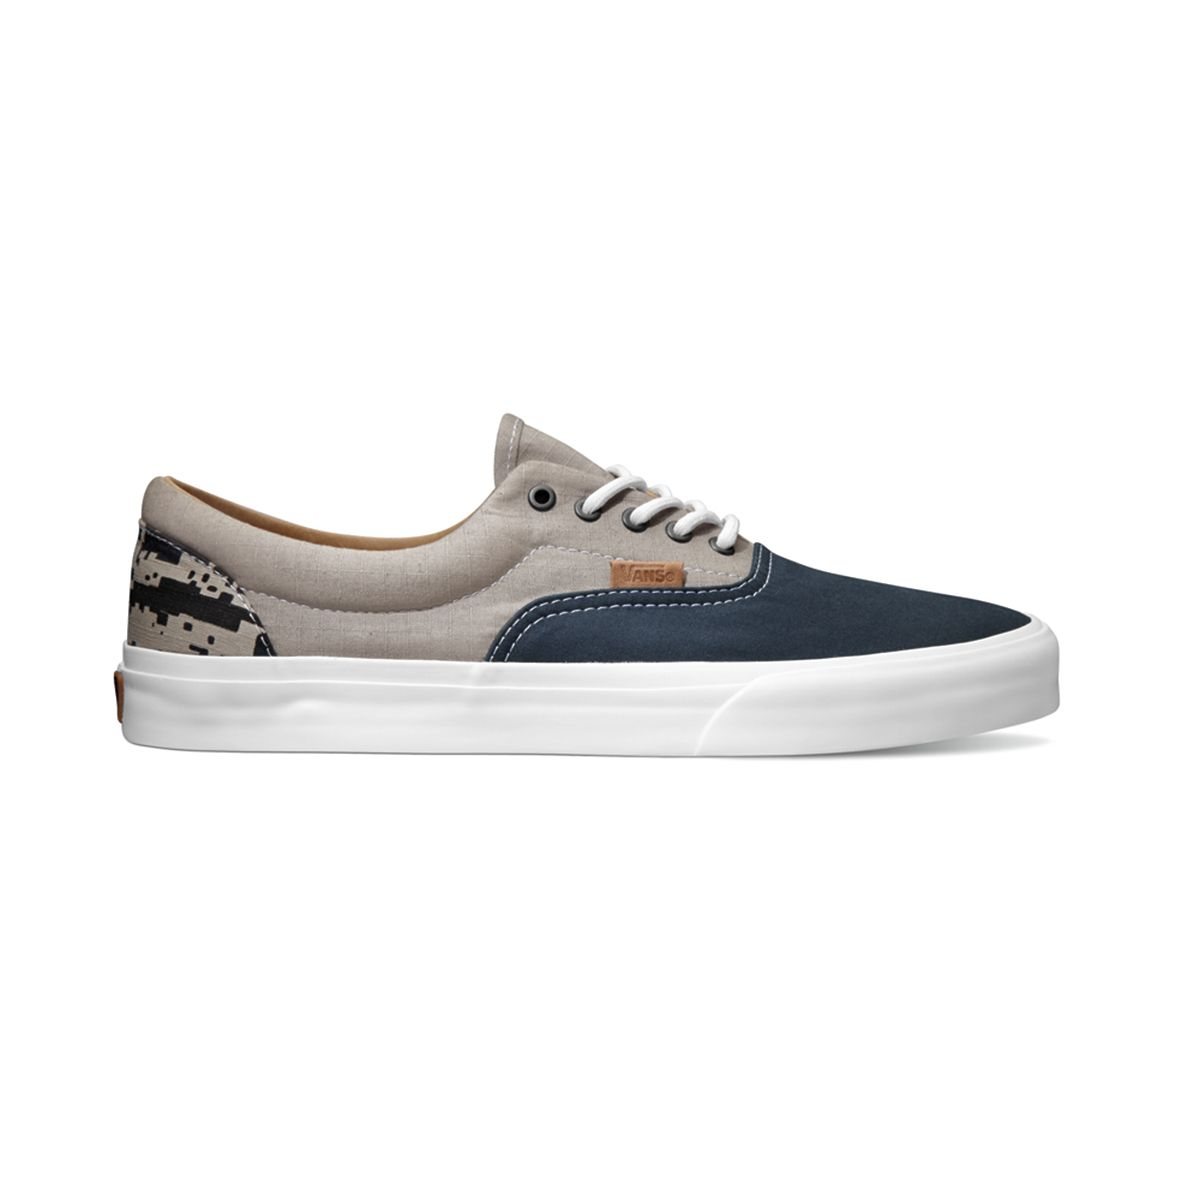 Vans California Collection Twill Pack - Era in Camo/Midnight Navy